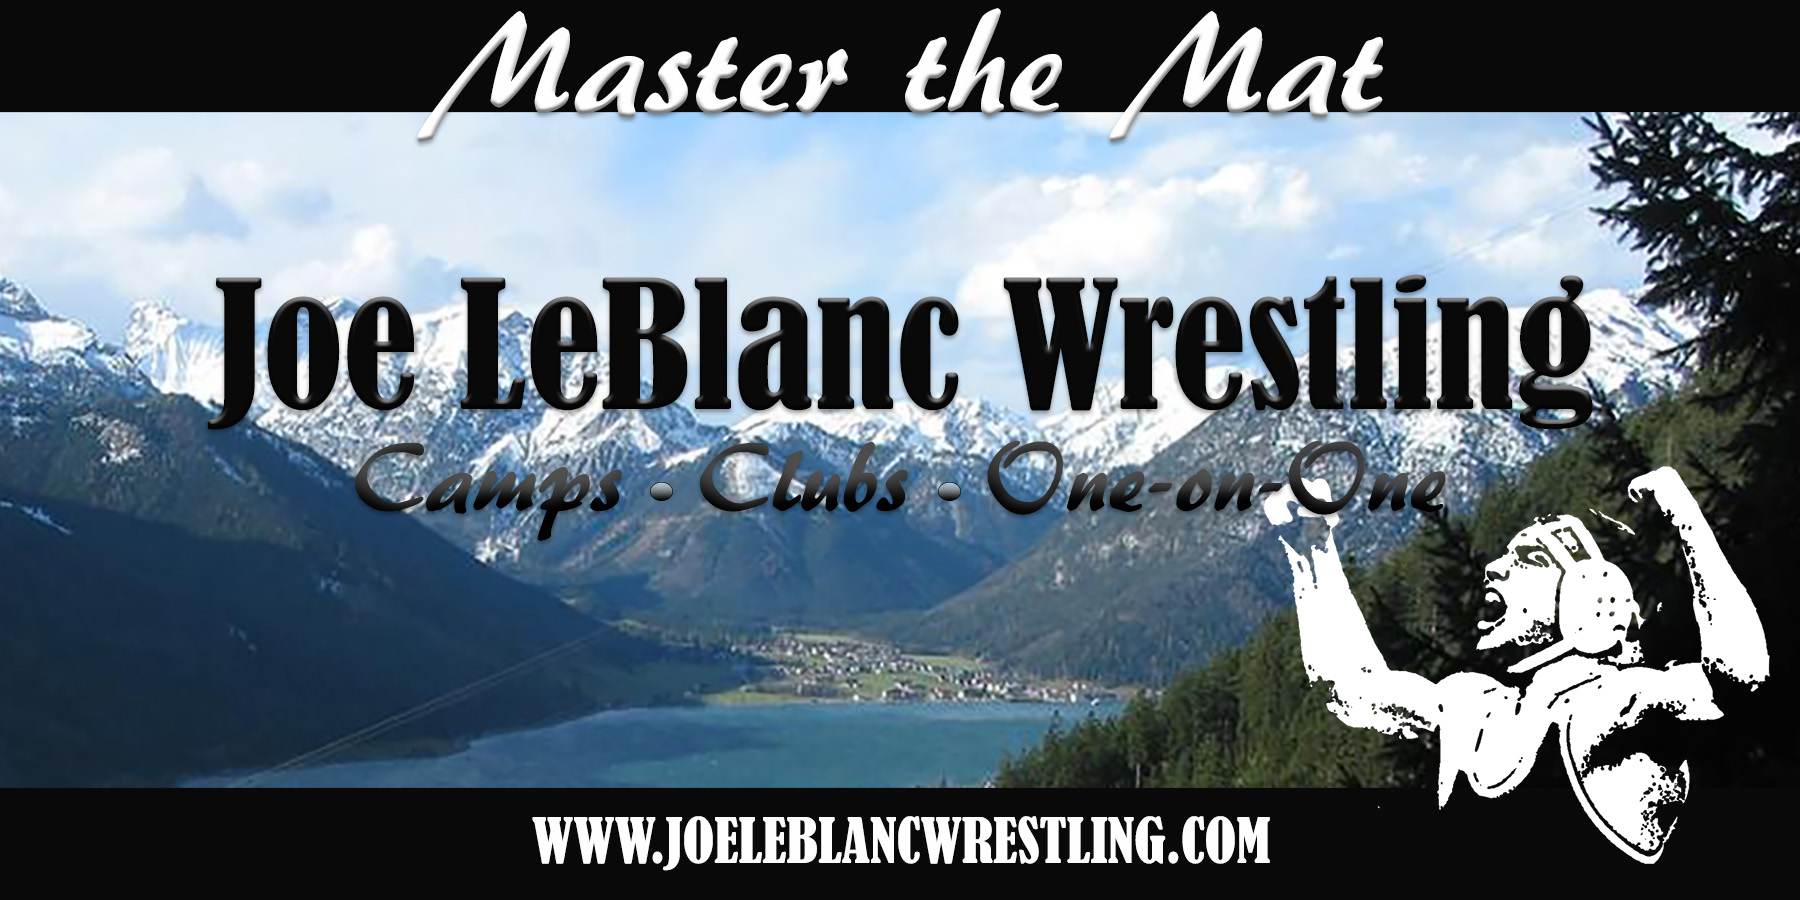 Joe LeBlanc Wrestling